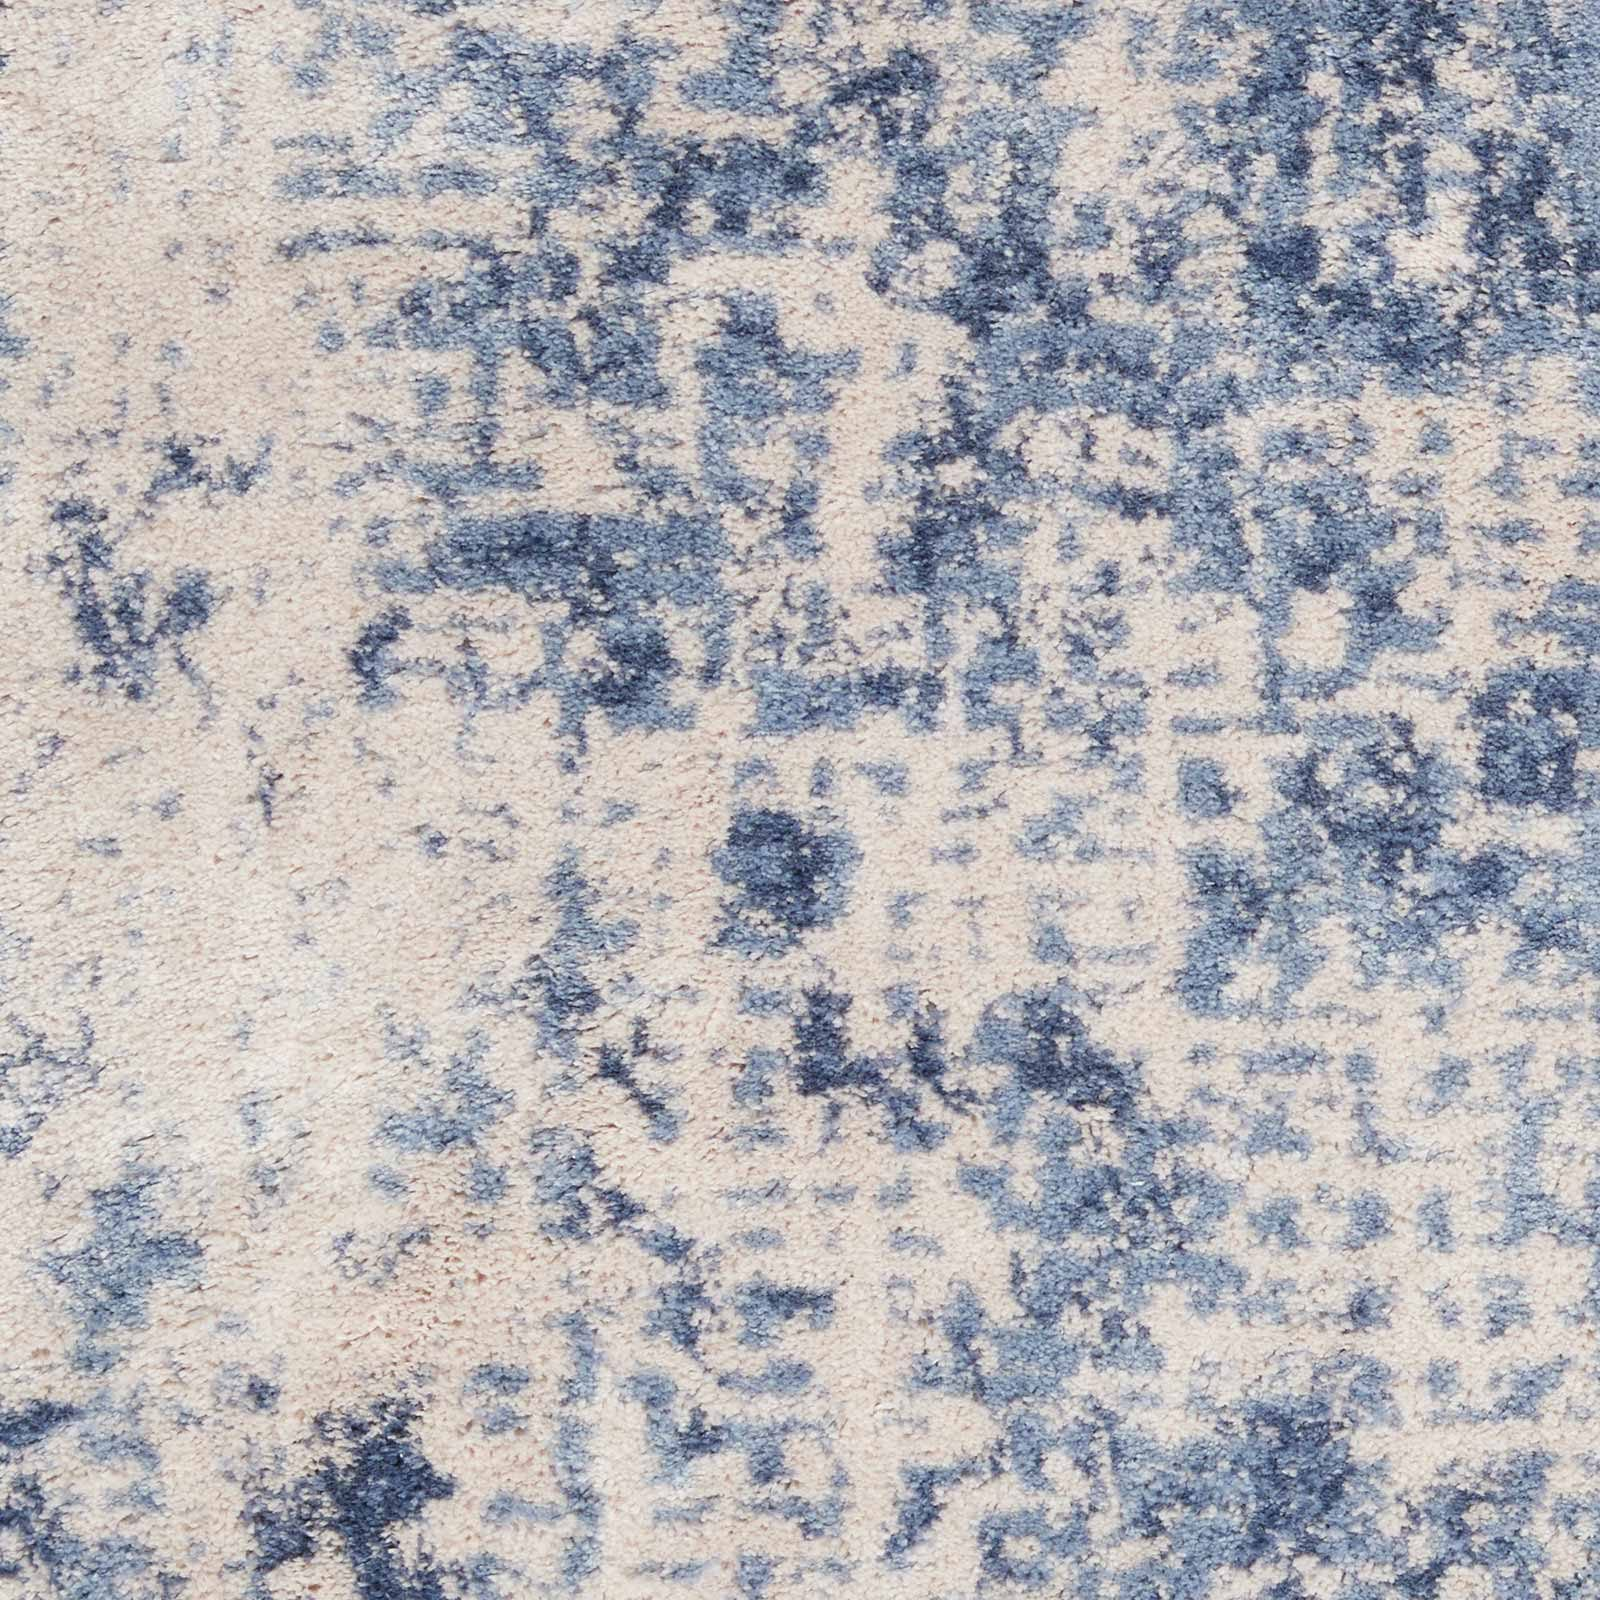 Nourison rug Silky Textures SLY01 IVORY BLUE 4x6 099446709677 swatch C